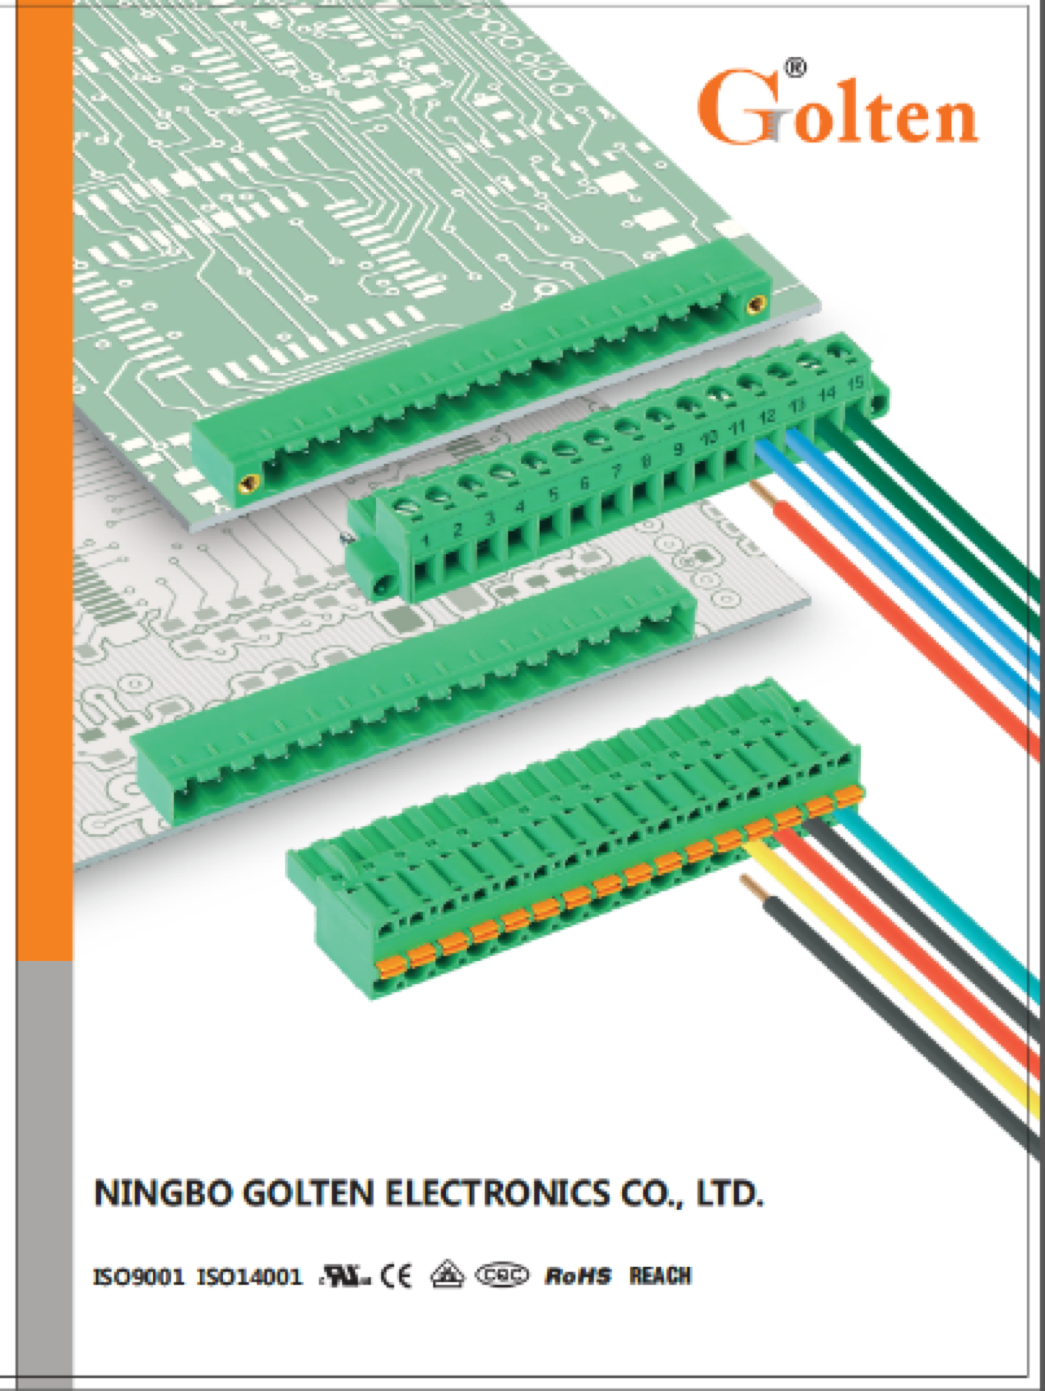 Ningbo Golten Electronics Co